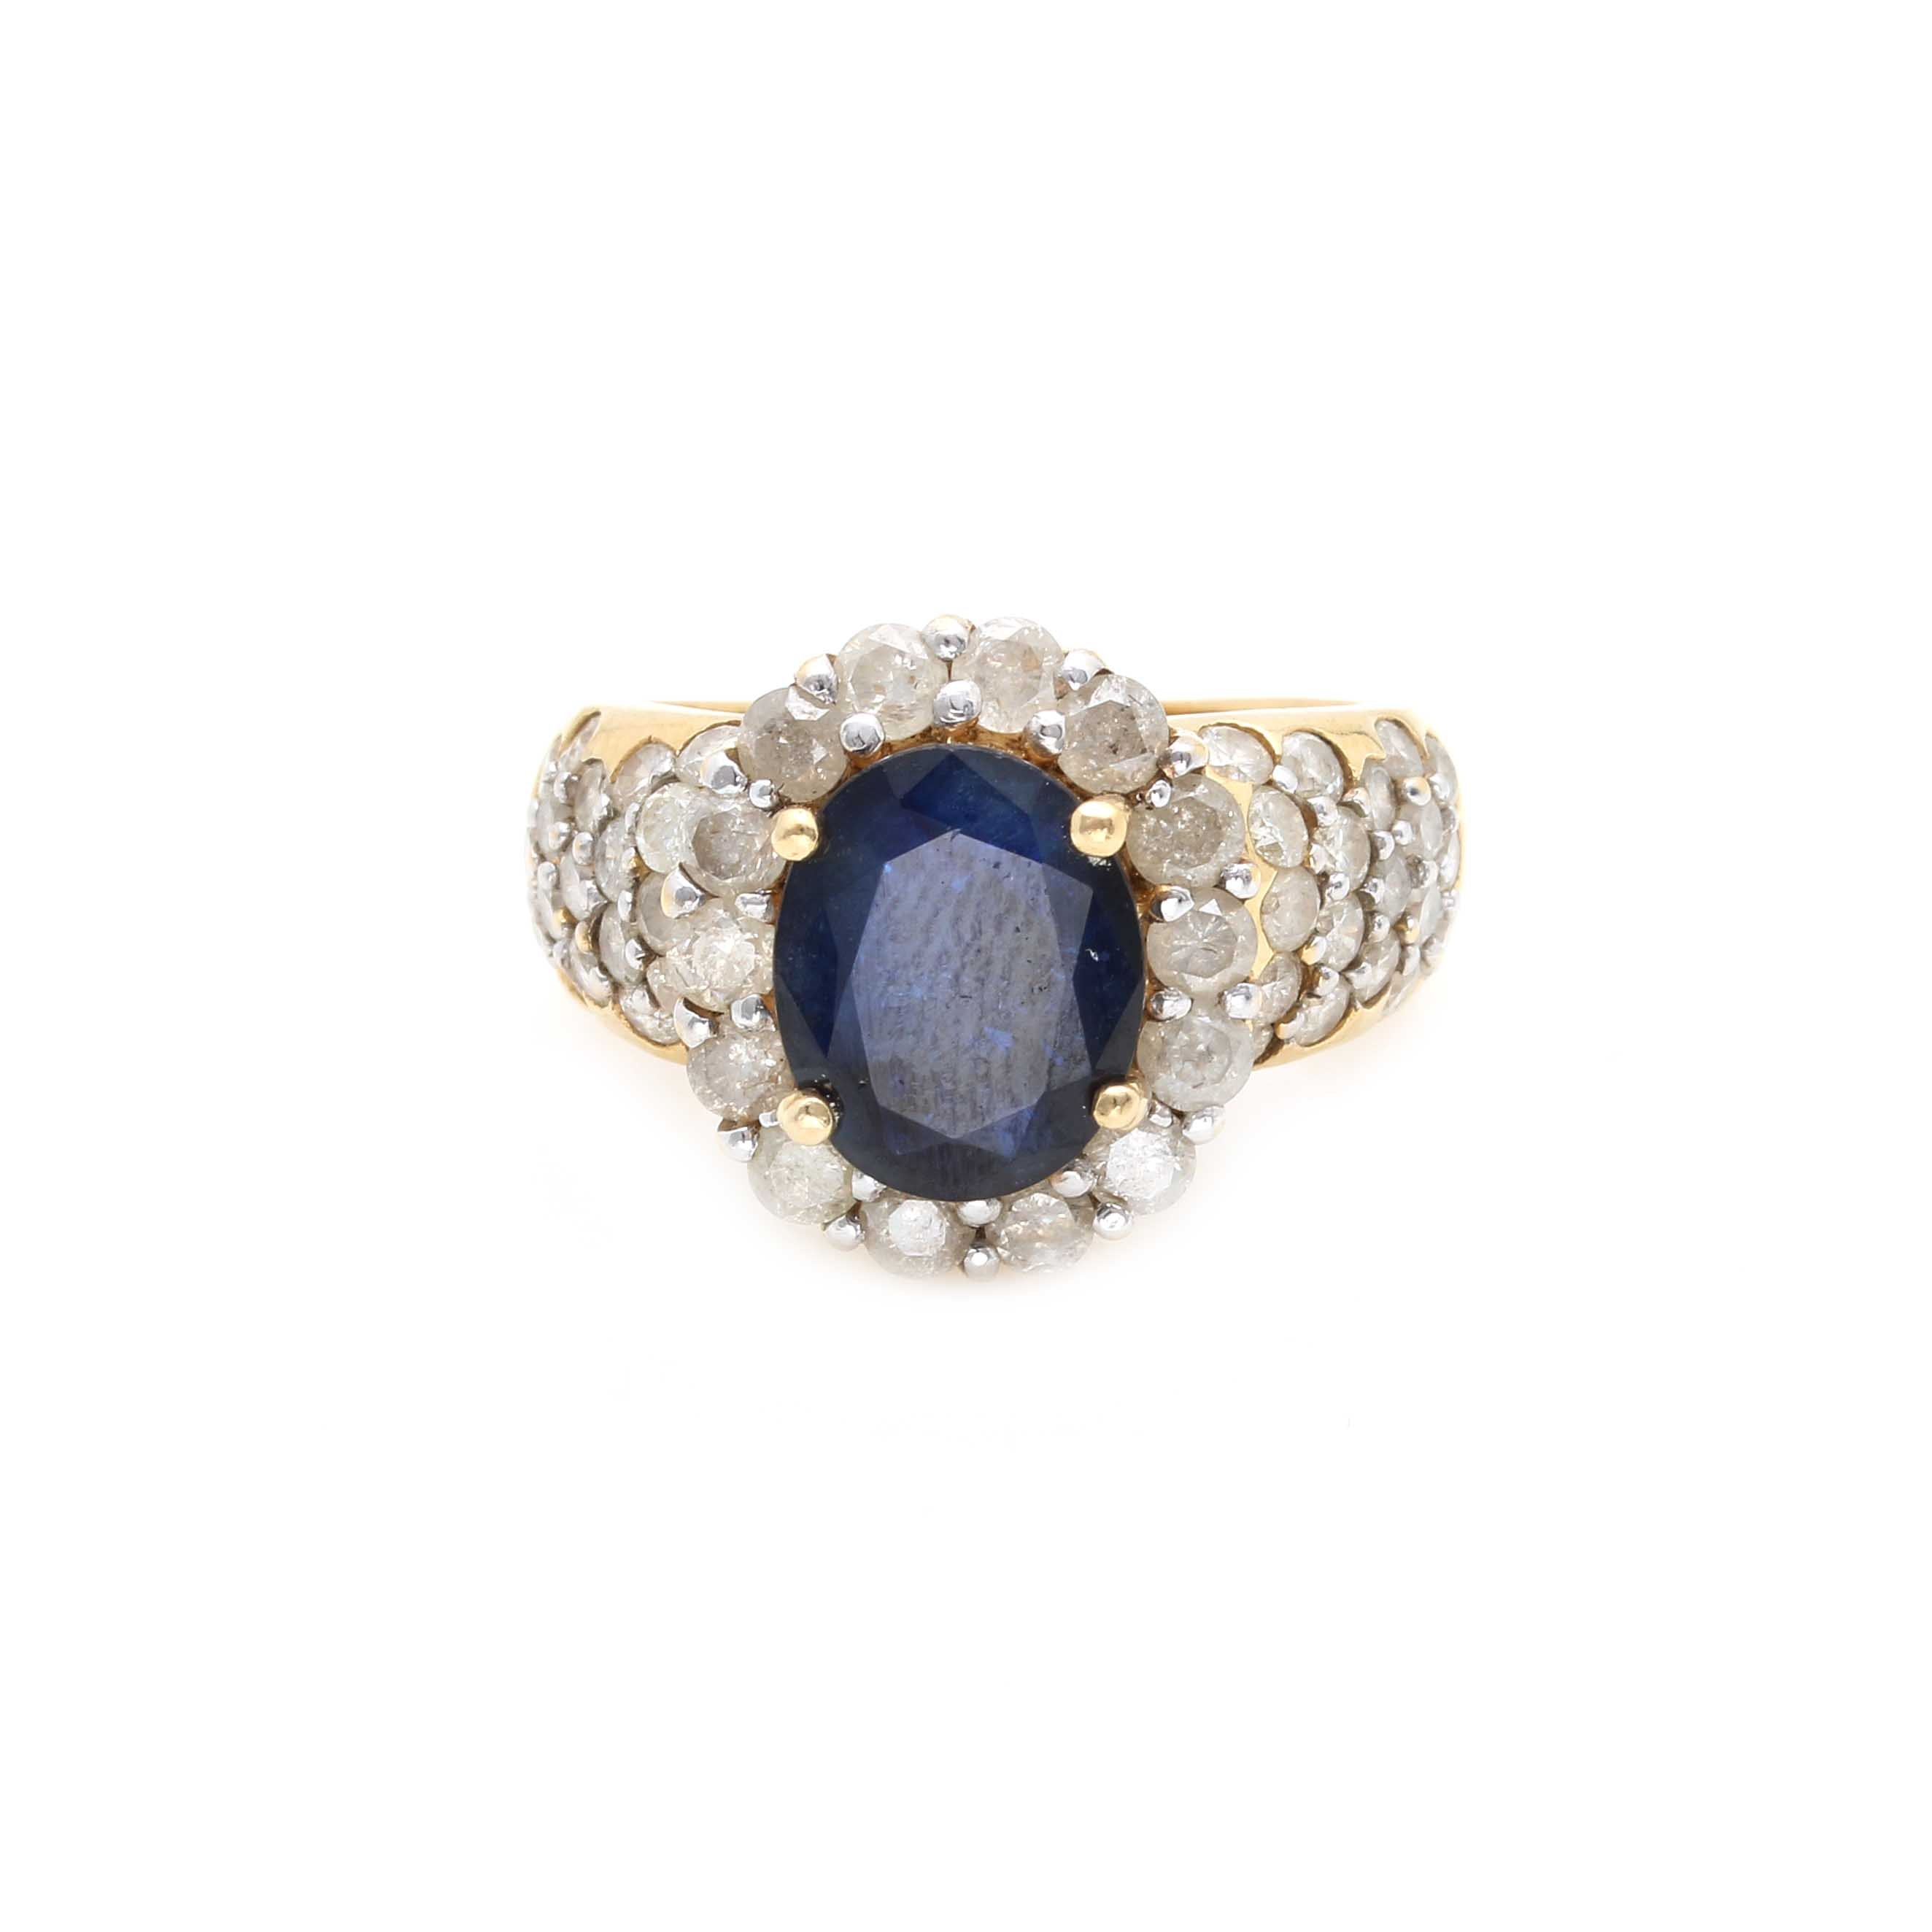 14K Yellow Gold 2.33 CT Sapphire and 1.98 CTW Diamond Ring